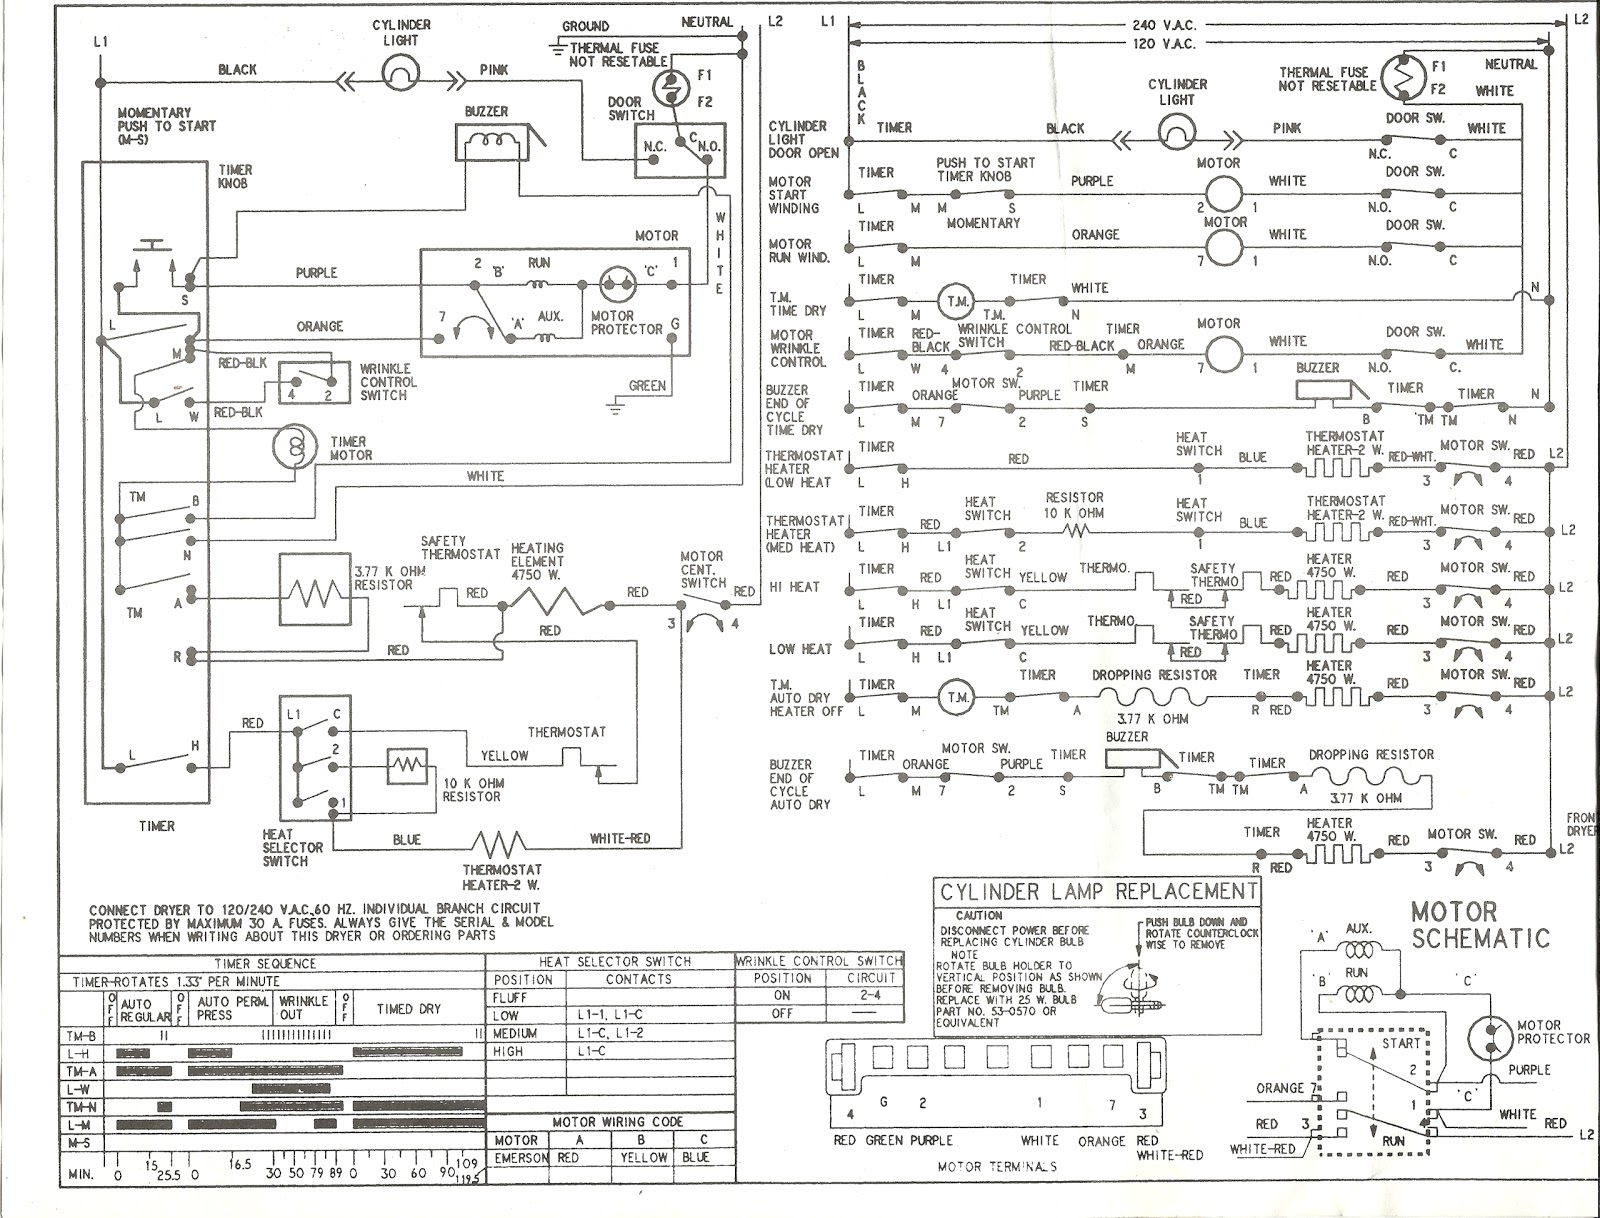 kenmore washer wiring diagram on wiring diagram parts wiring for kenmore 80 series washer parts diagram wiring diagram for whirlpool washer on wiring download wirning  at mifinder.co